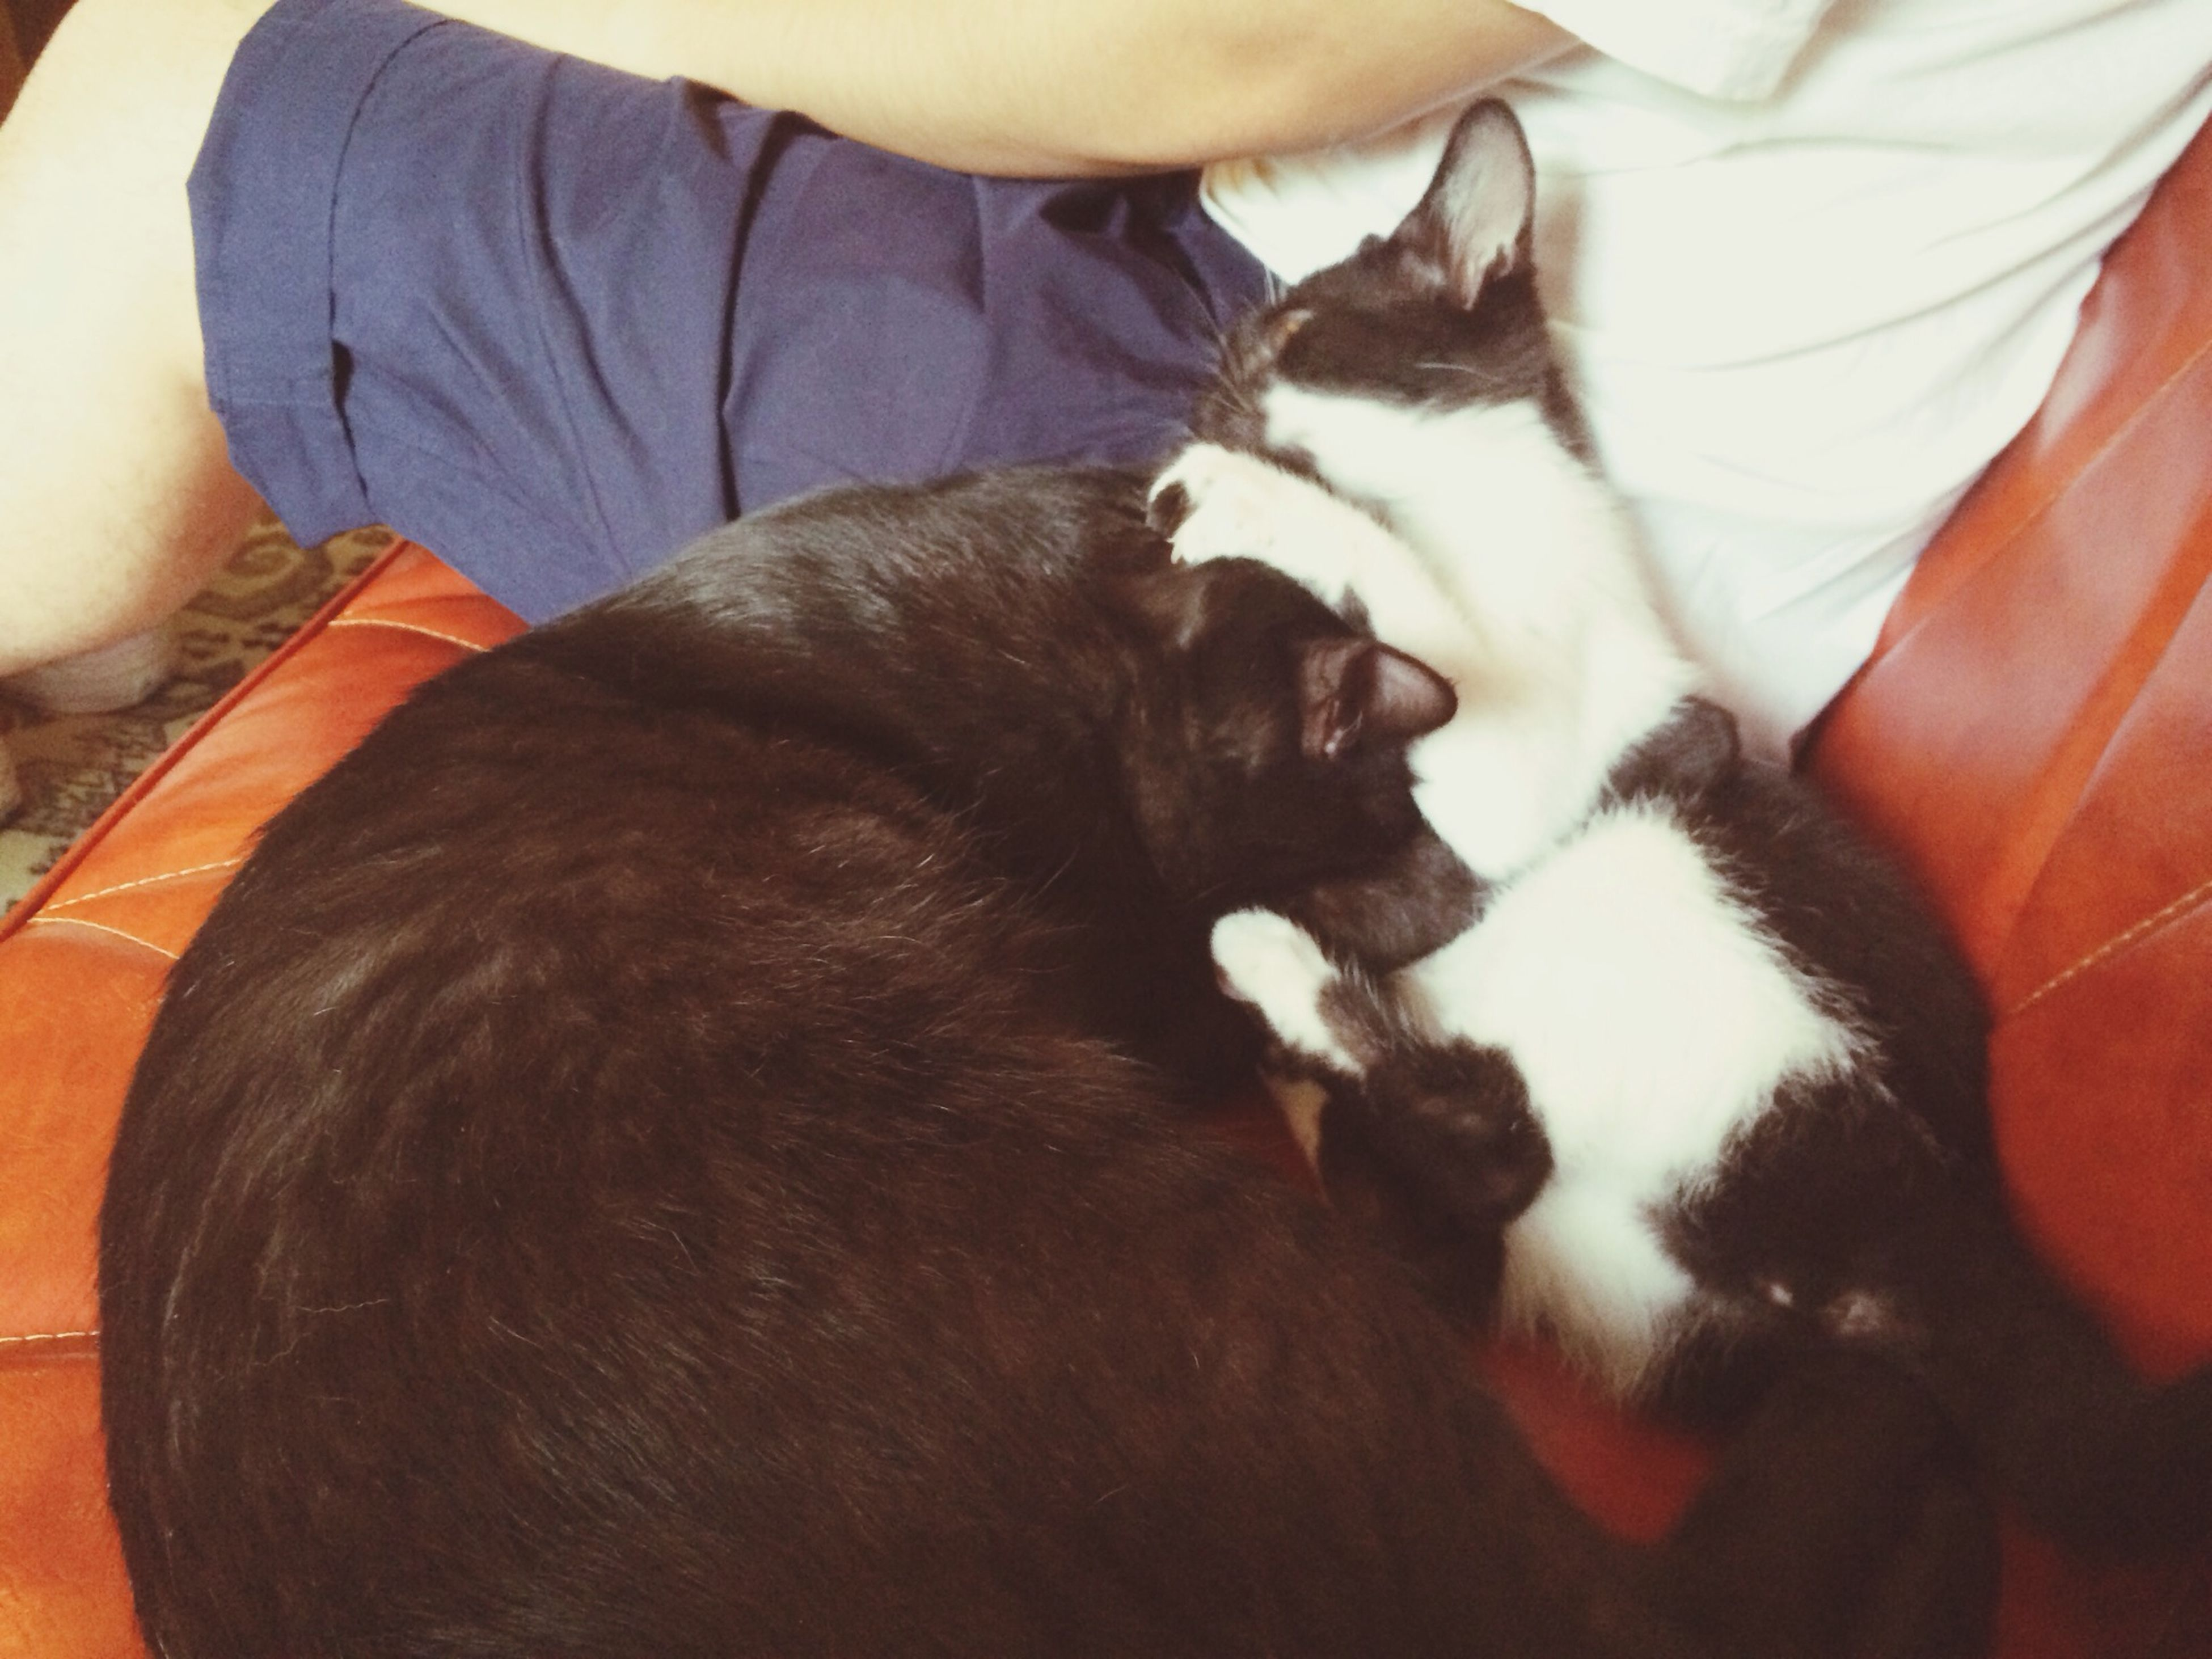 pets, domestic animals, animal themes, one animal, indoors, mammal, relaxation, domestic cat, resting, sleeping, togetherness, cat, bed, lying down, high angle view, pet owner, dog, home interior